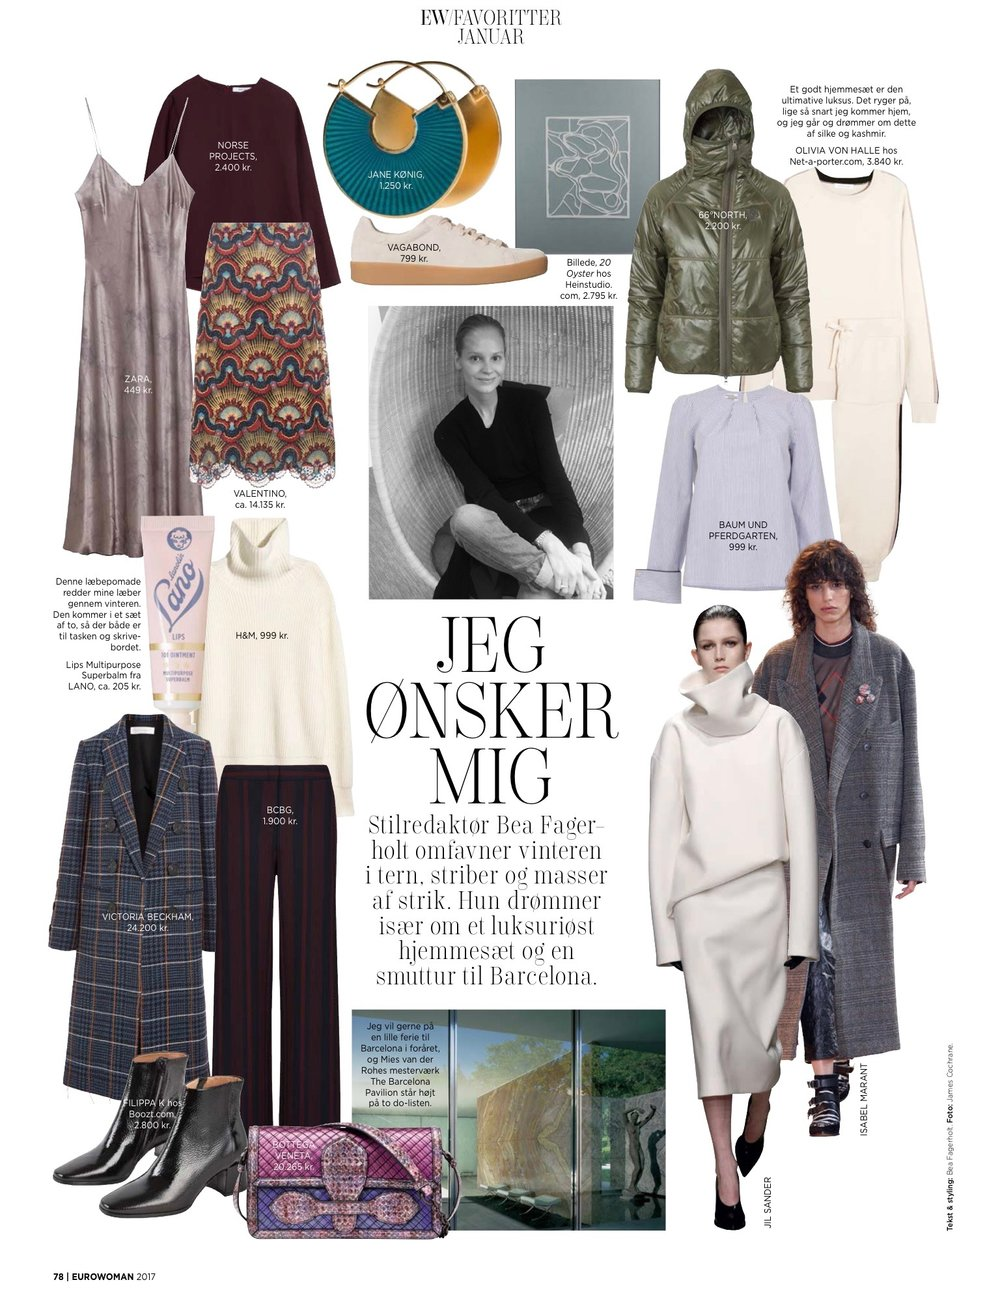 EUROWOMAN / January 2017 Diversity collection - 20 Oyster